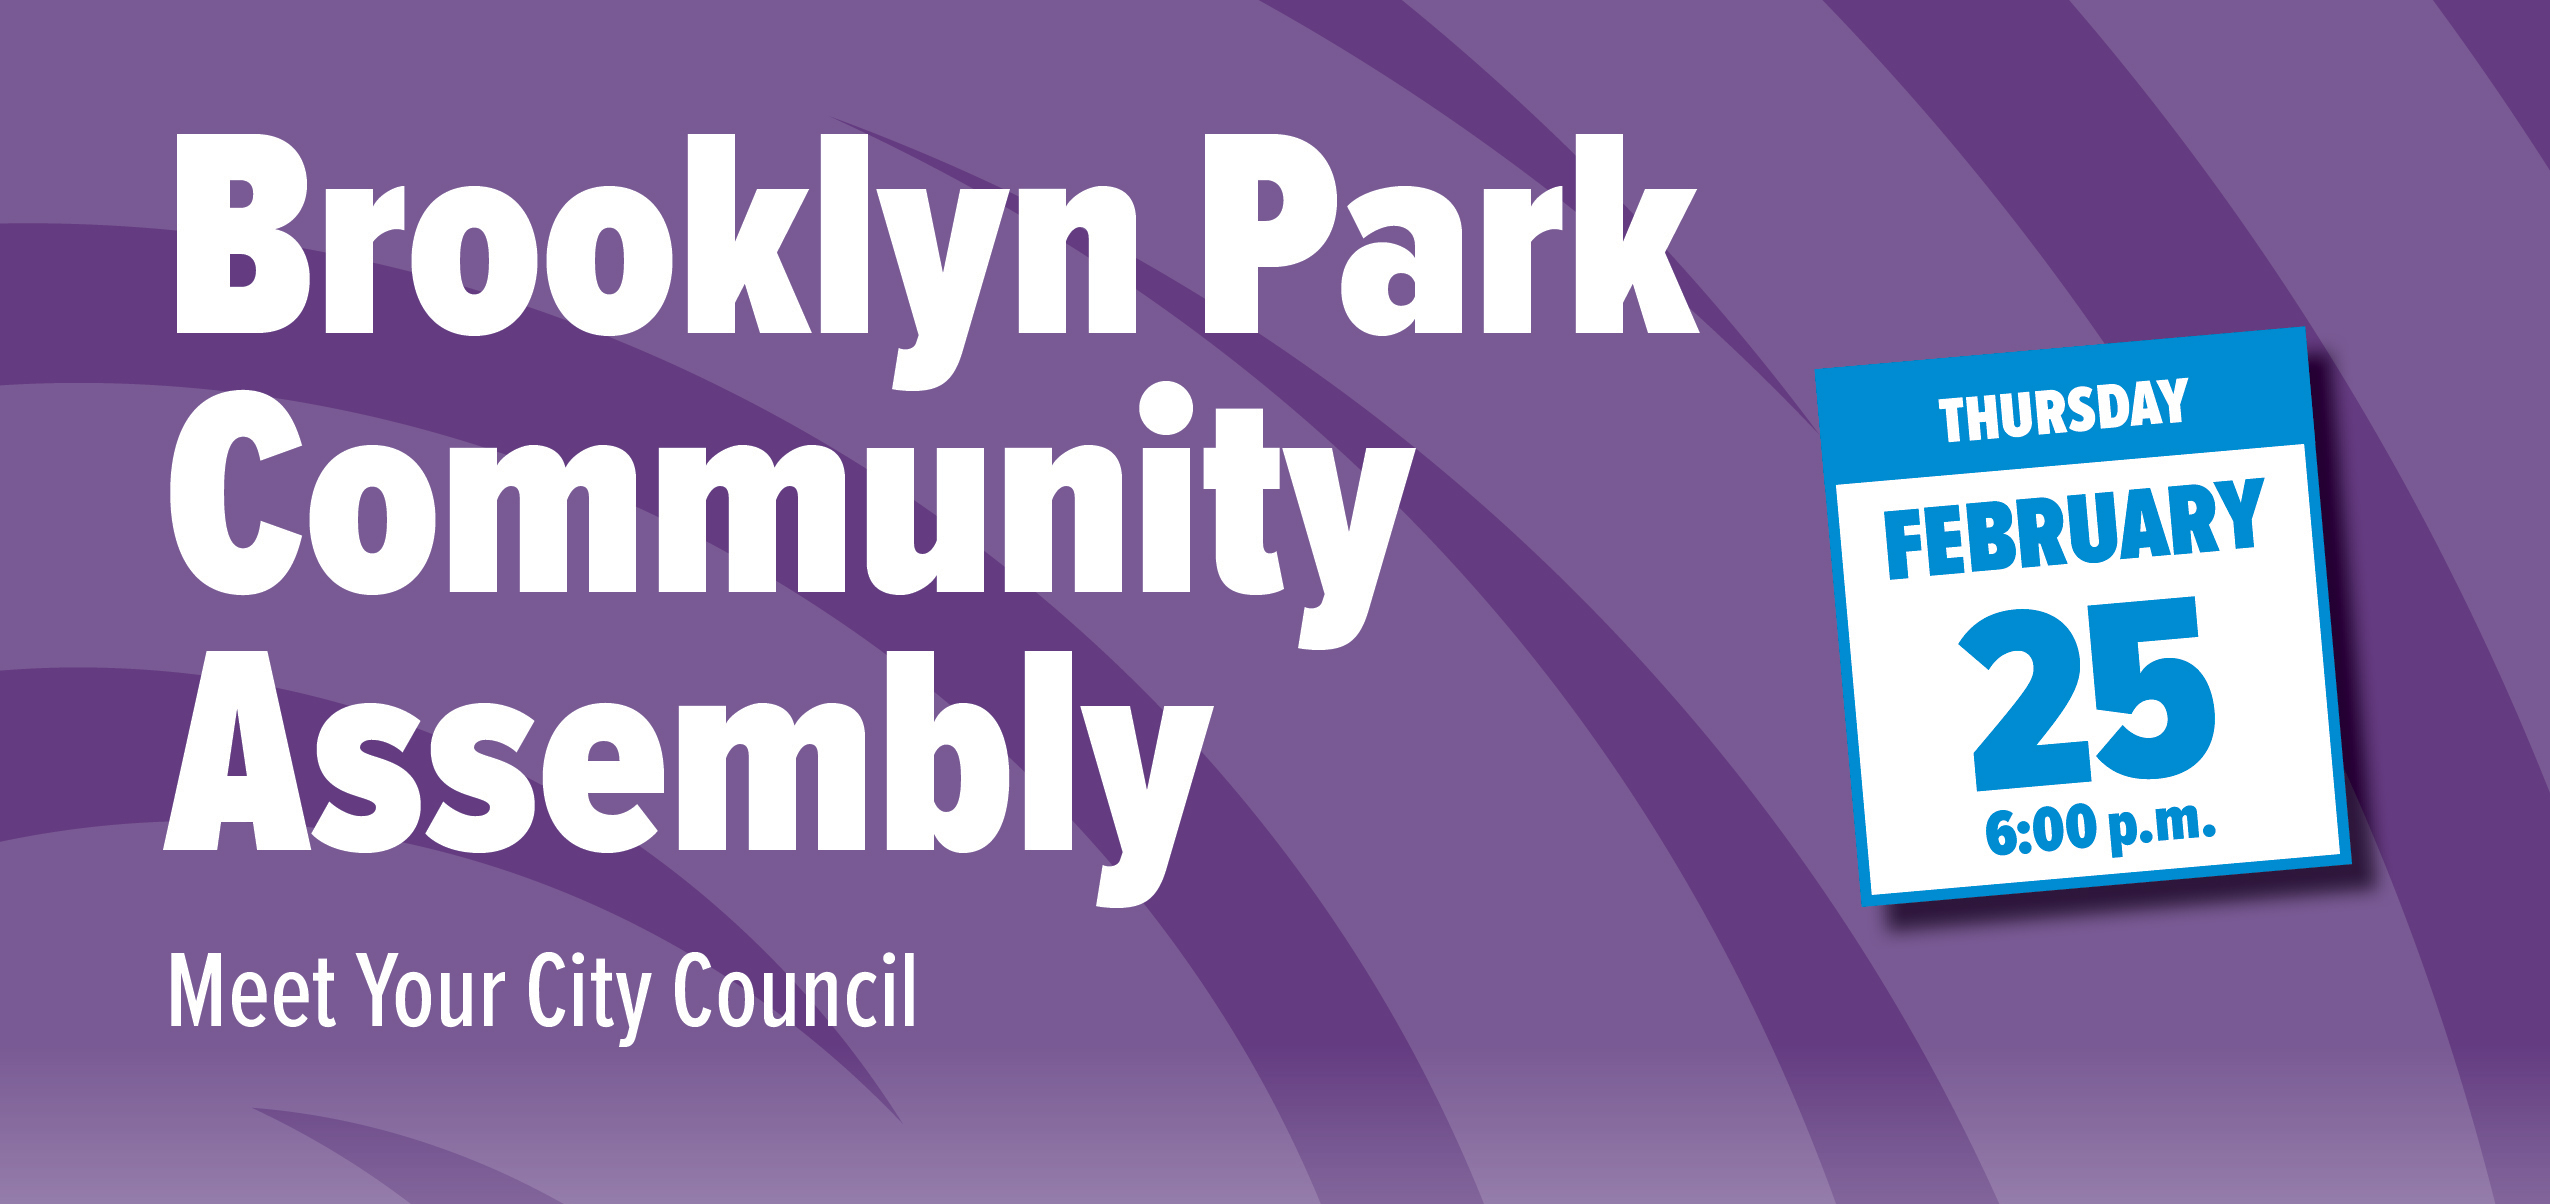 Brooklyn Park Community Assembly Meet Your City Council. February 25.